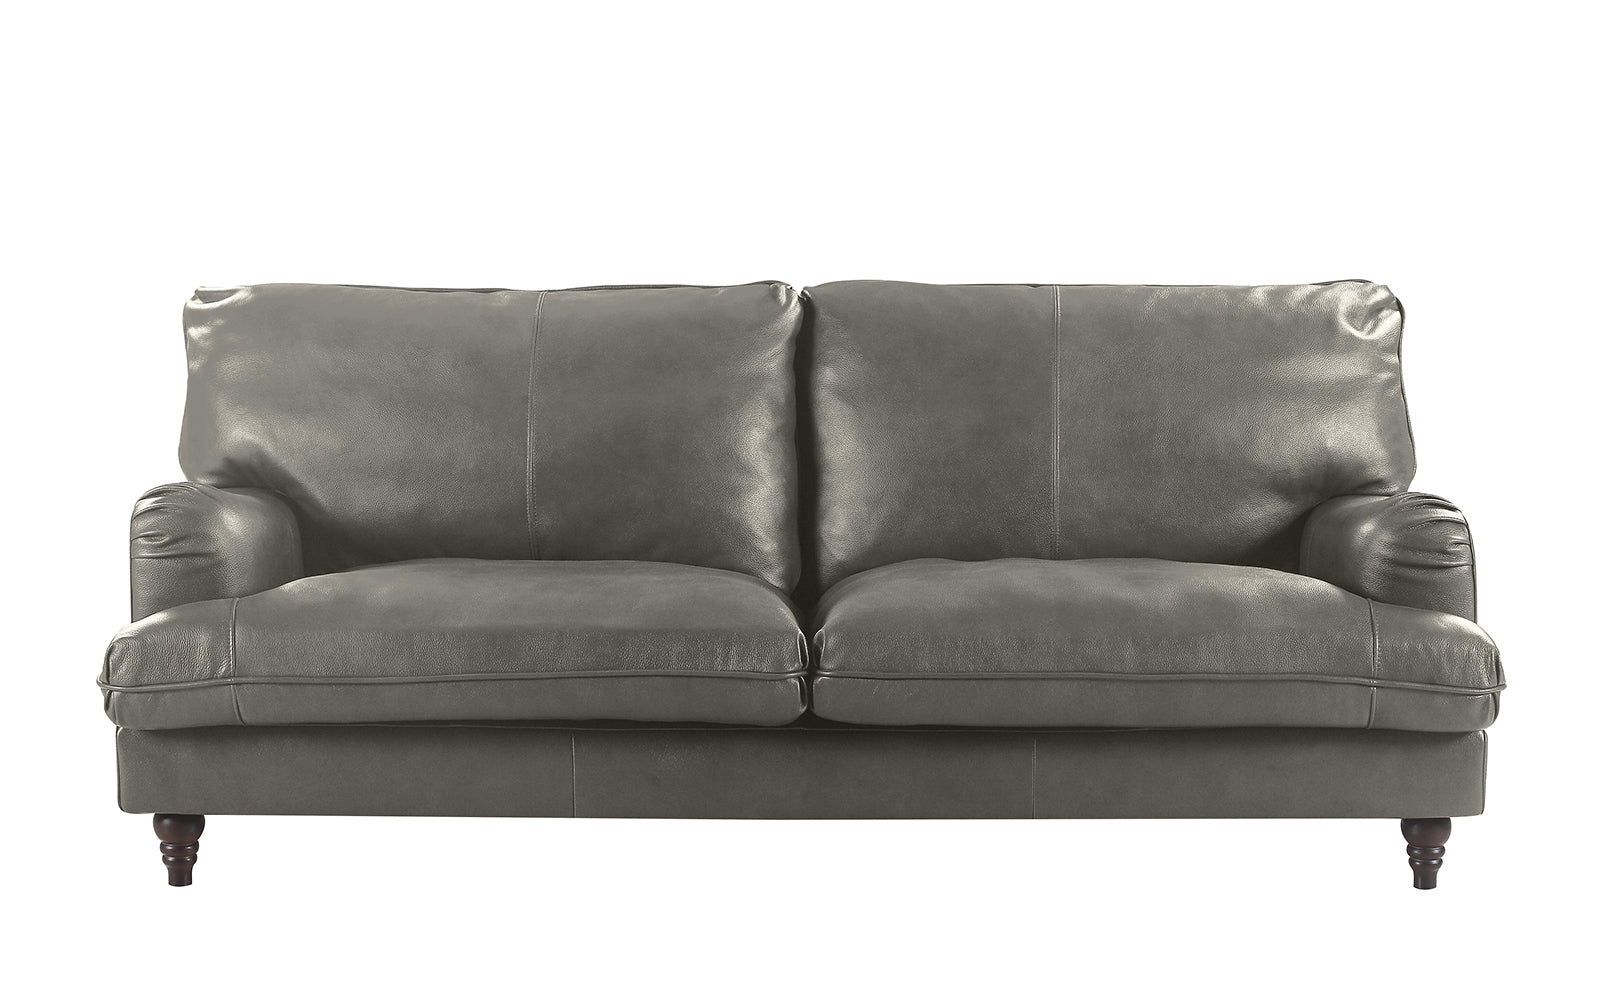 Top Grain Leather Sofa Image